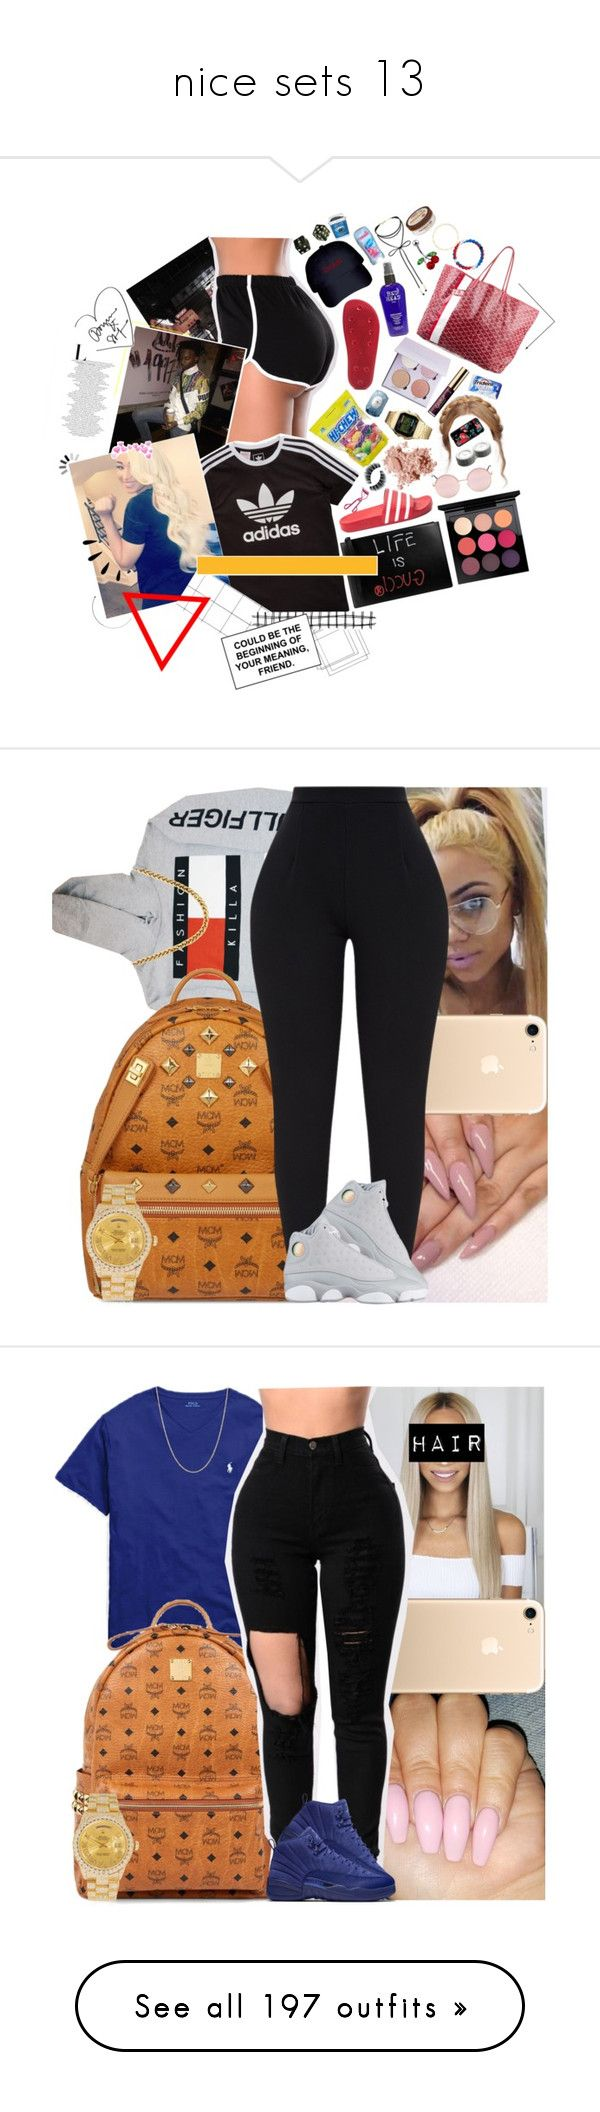 """nice sets 13"" by danny-baby ❤ liked on Polyvore featuring MAC Cosmetics, adidas Originals, Bobbi Brown Cosmetics, Forever 21, adidas, Gucci, Vans, Timex, Anastasia Beverly Hills and Fresh"